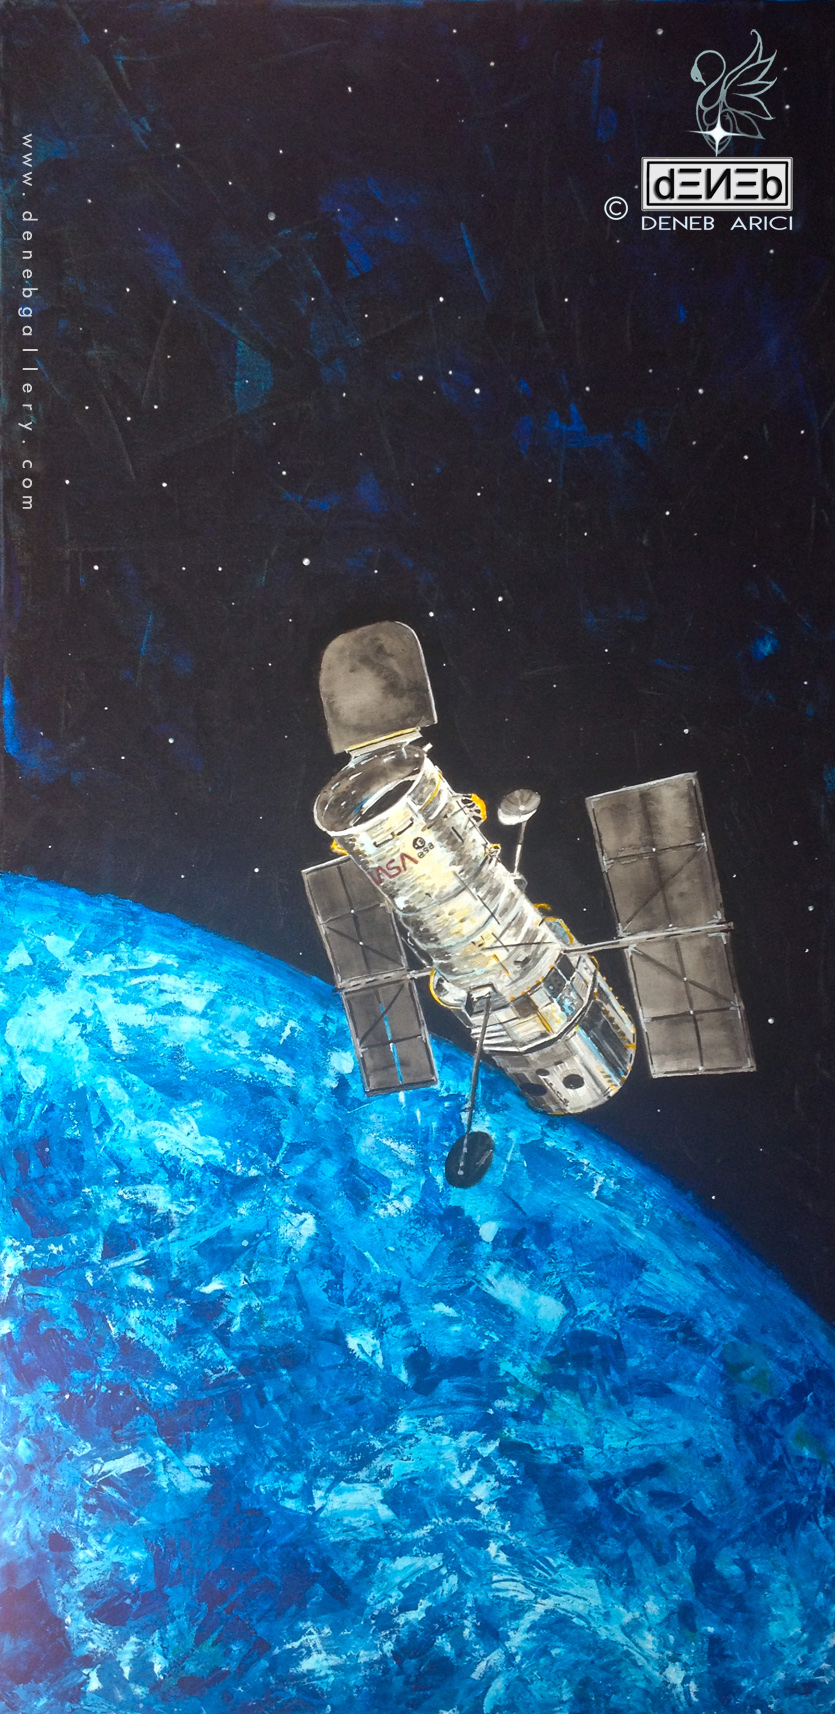 Everyday I'm Hubblin' - Hubble Space Telescope